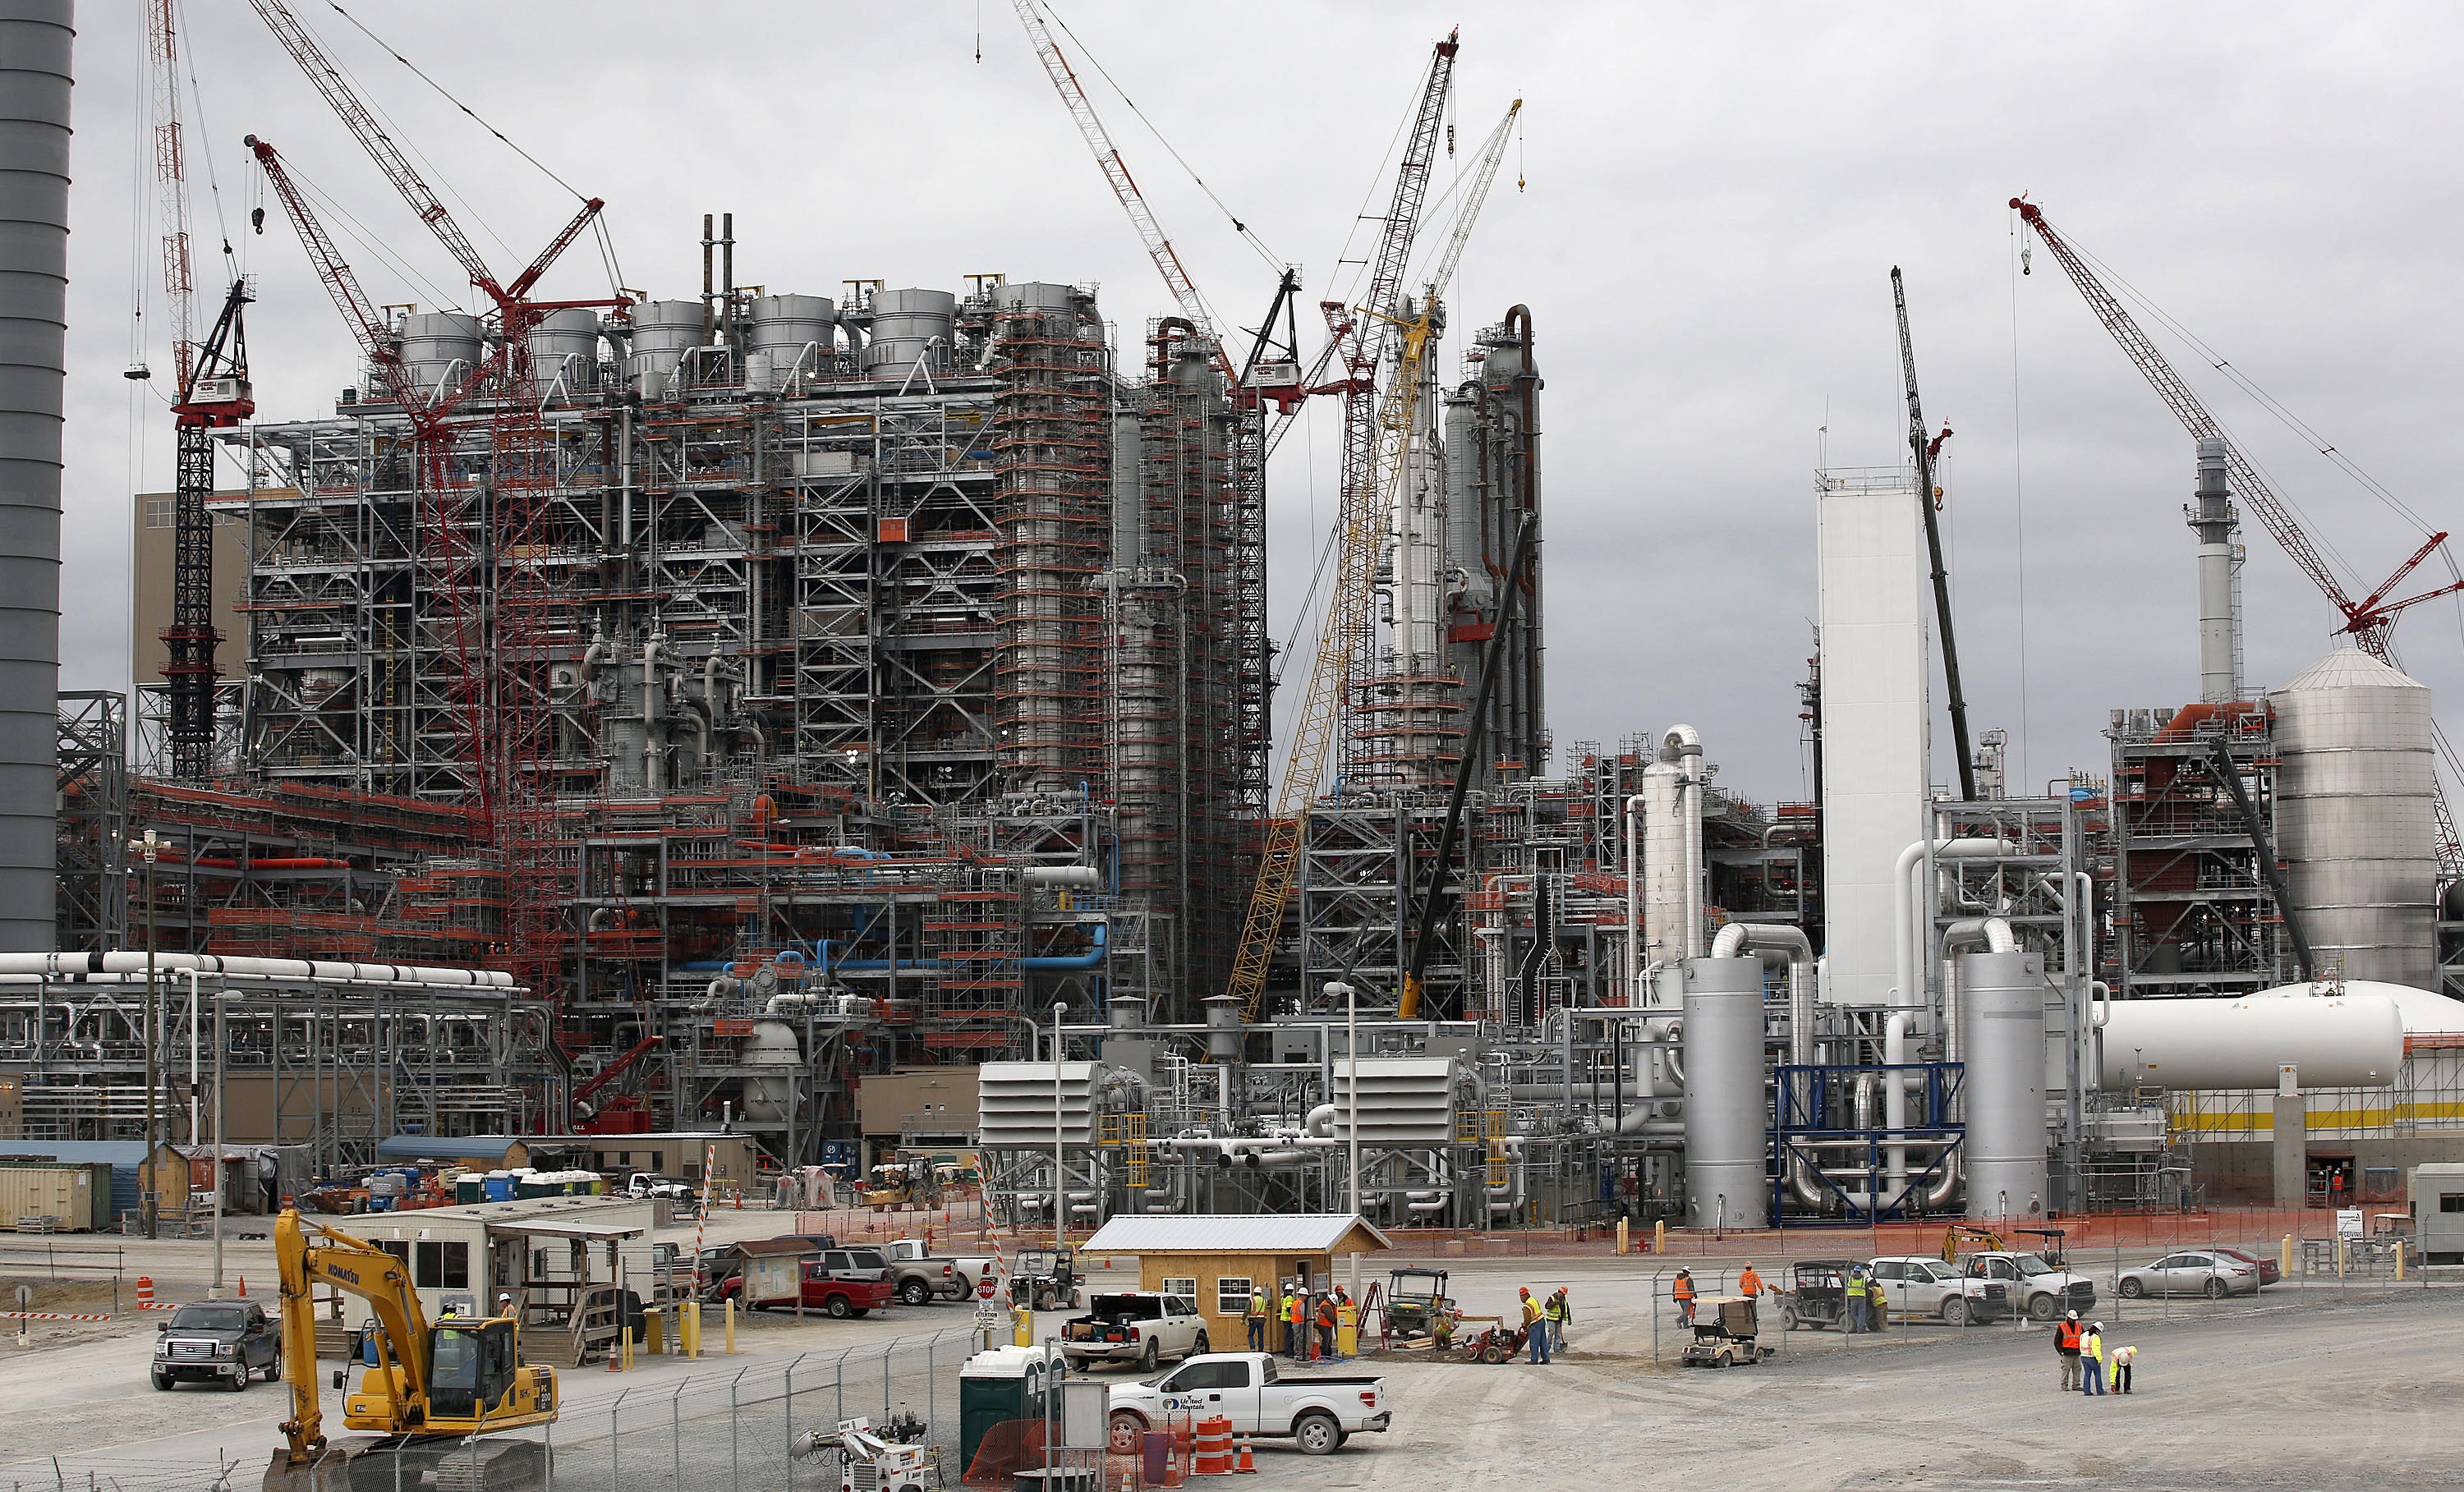 Cranes stand at the construction site for Southern Co.'s Kemper County power plant near Meridian, Mississippi, U.S., on Feb. 25, 2014.